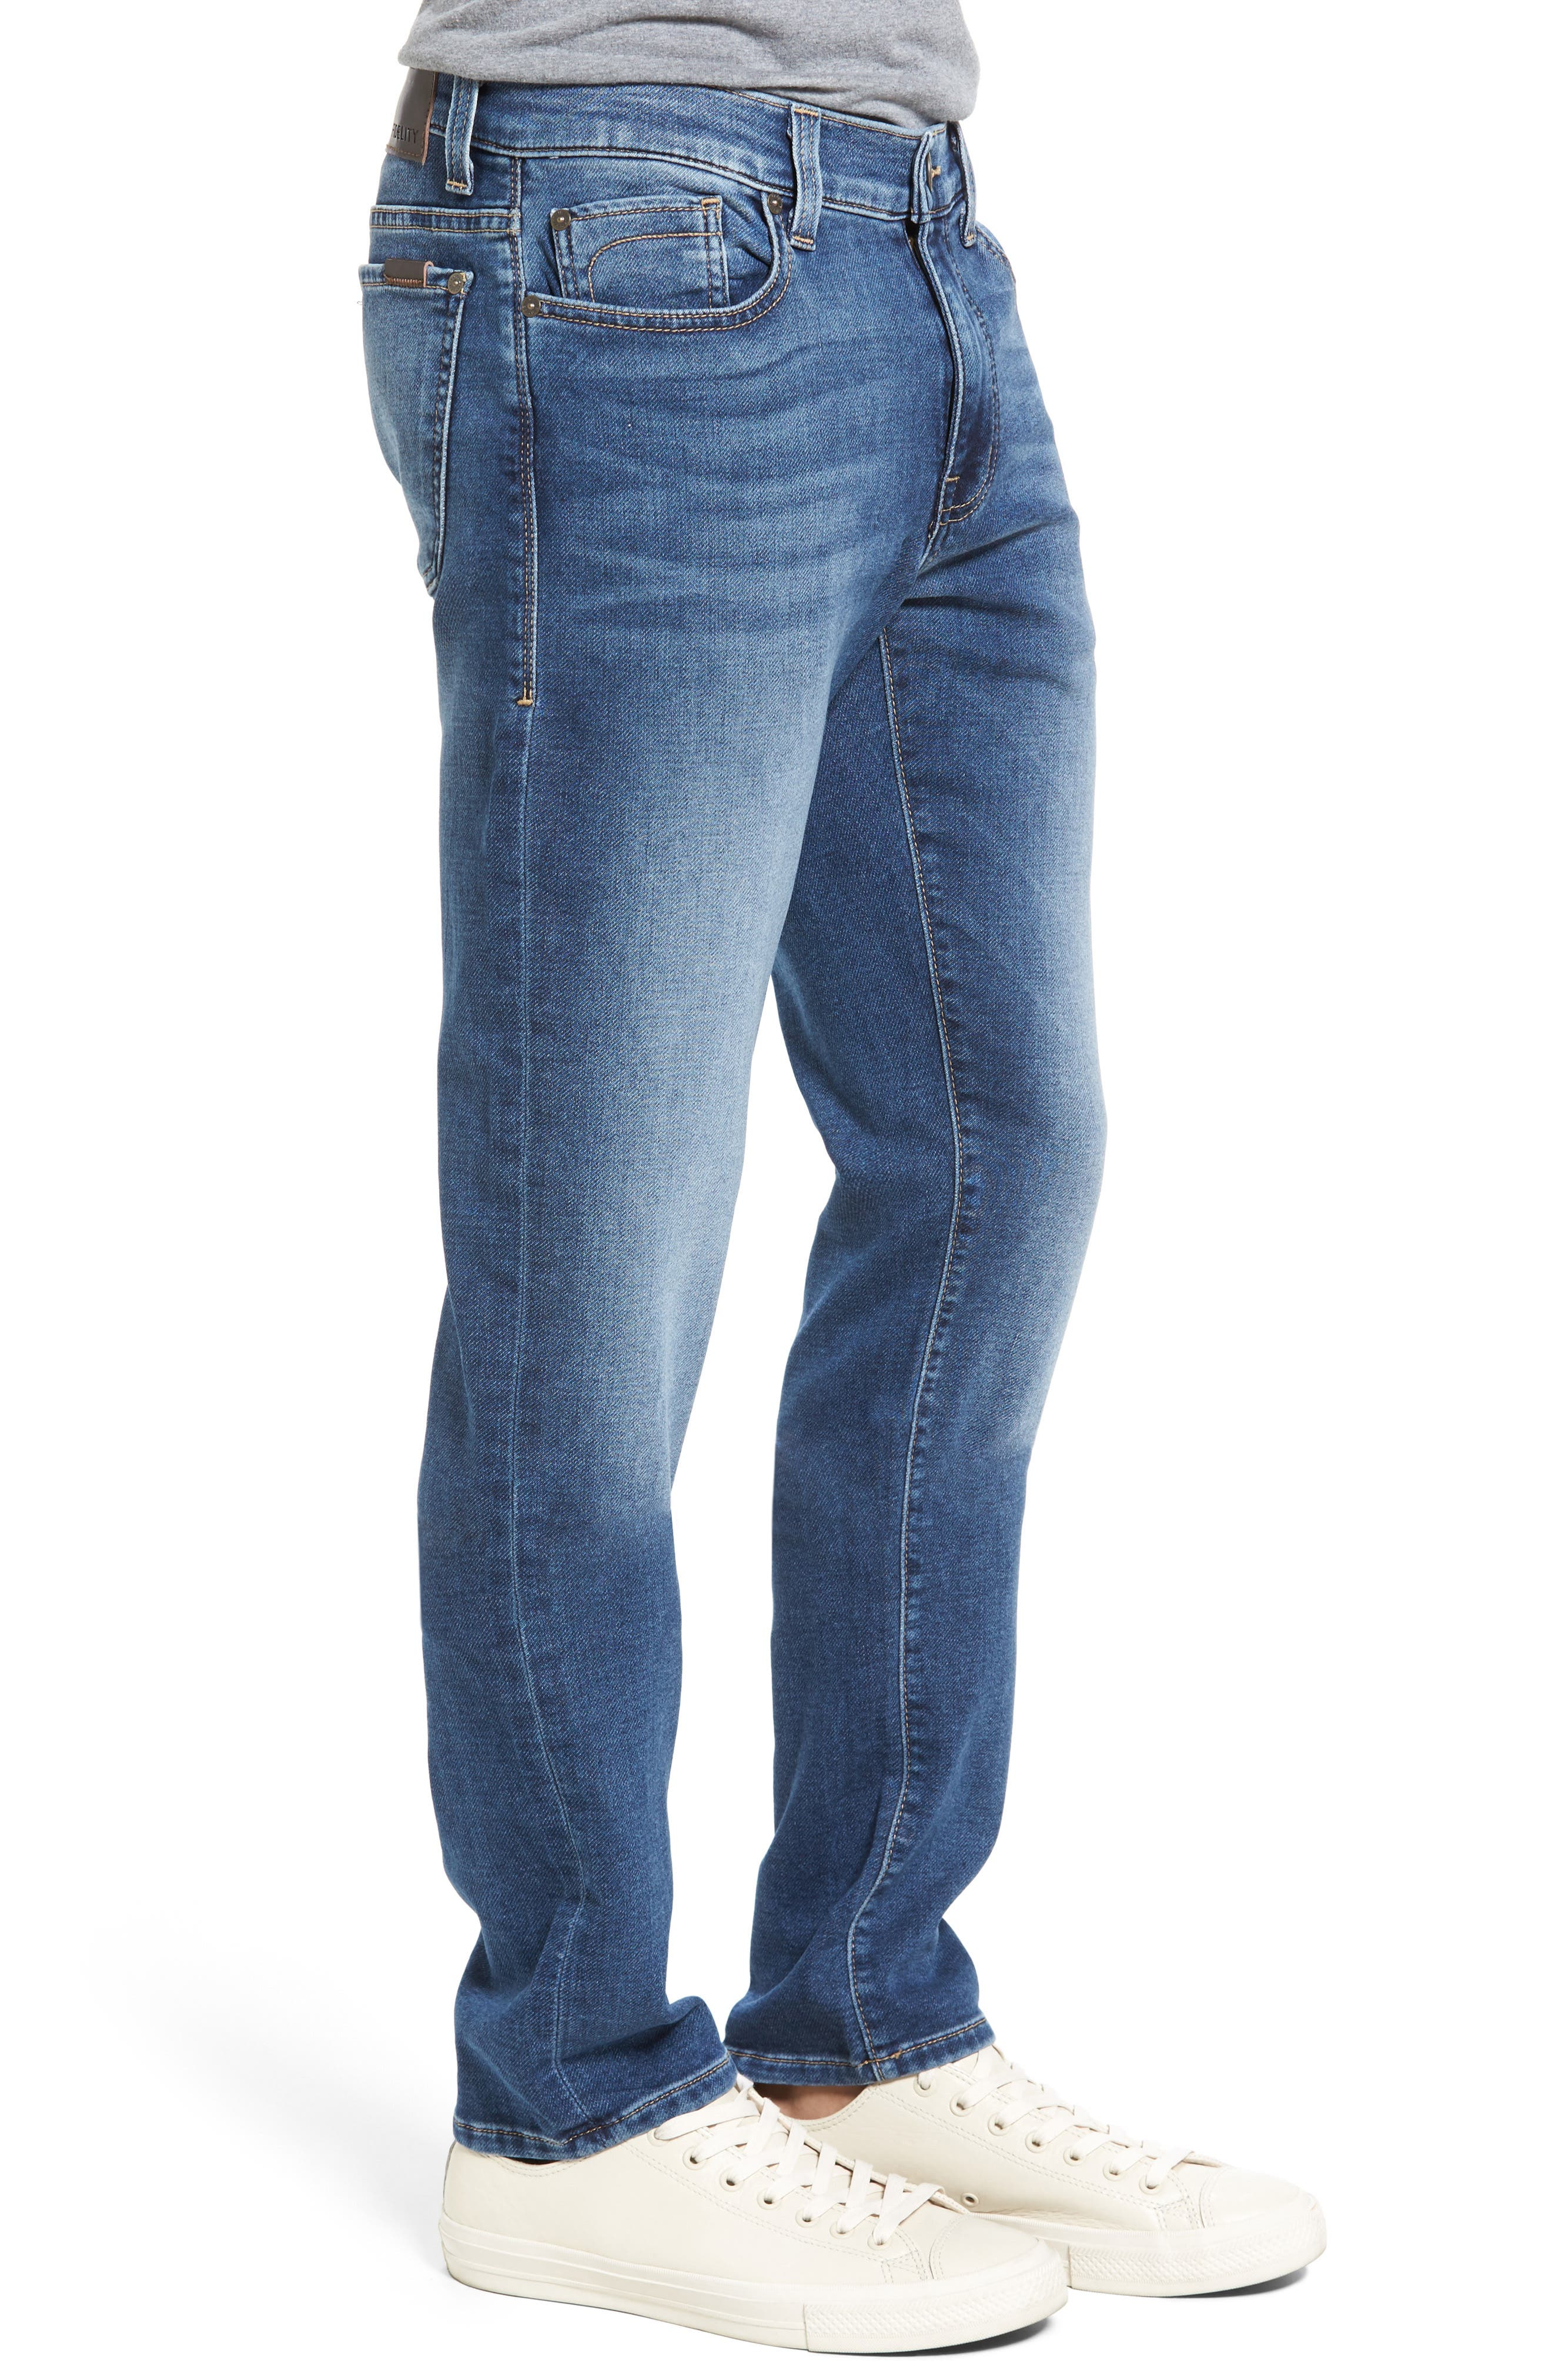 Fideliety Denim Torino Slim Fit Jeans,                             Alternate thumbnail 3, color,                             424